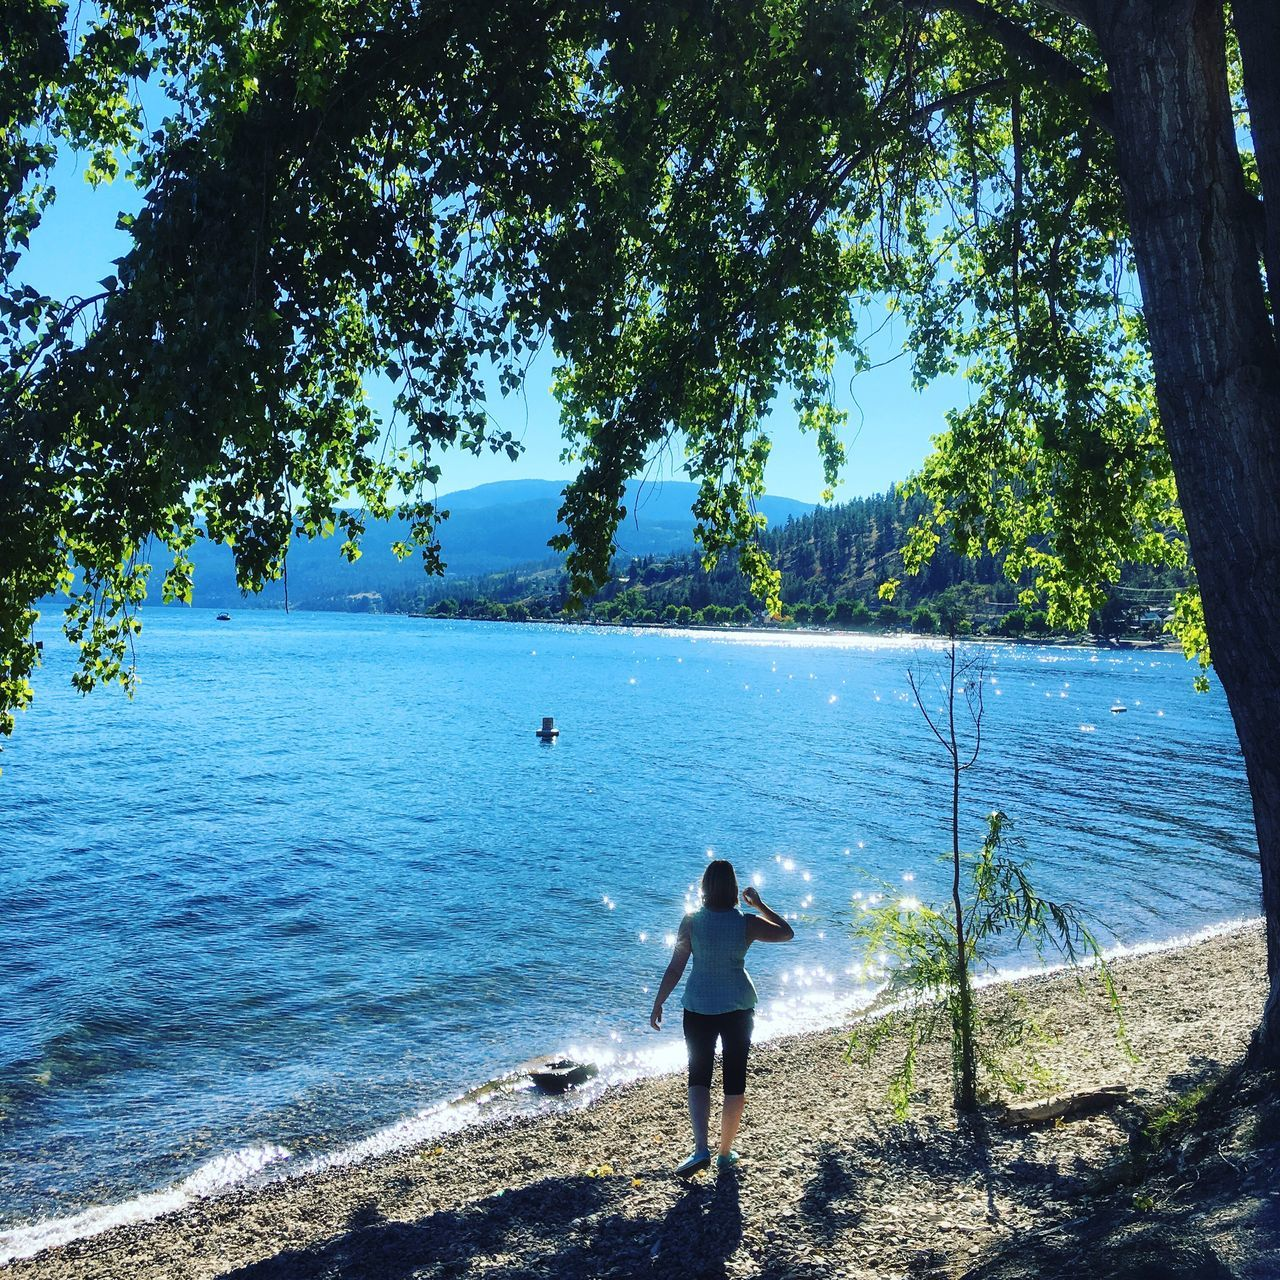 tree, sea, water, nature, real people, standing, day, beauty in nature, beach, leisure activity, scenics, tranquil scene, outdoors, one person, blue, vacations, horizon over water, people